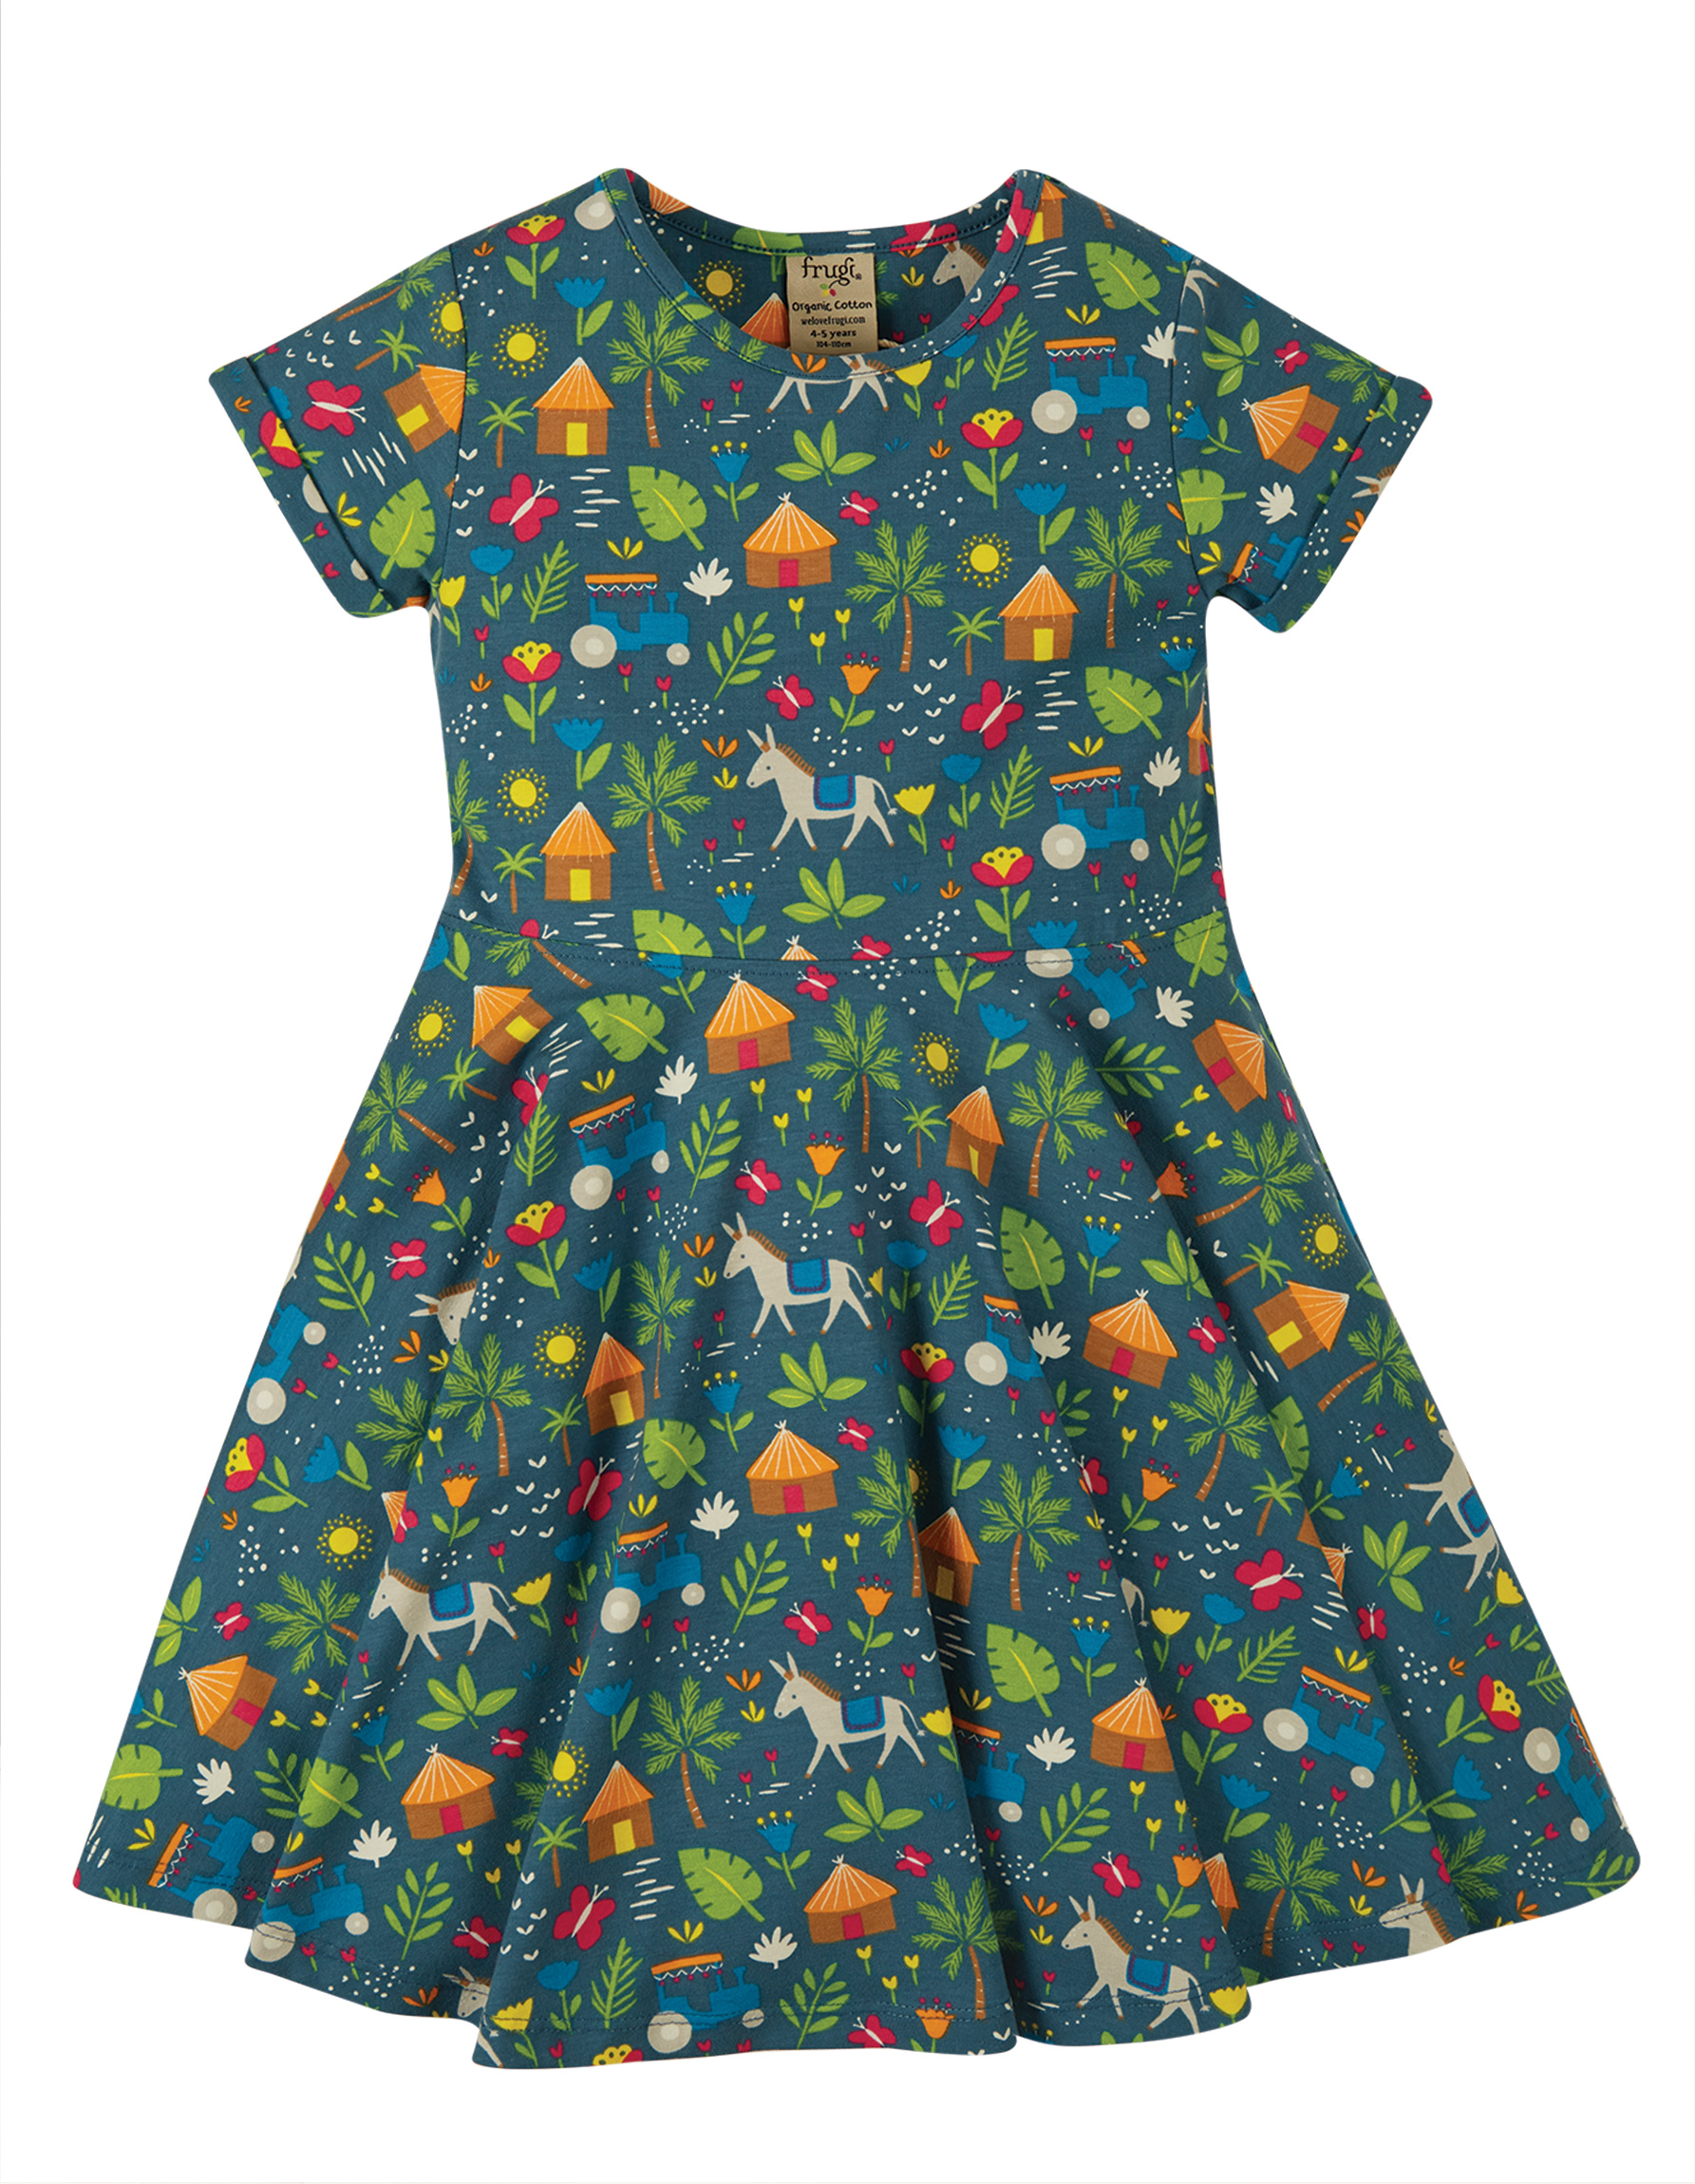 Frugi Spring Skater Dress, Indigo Farm